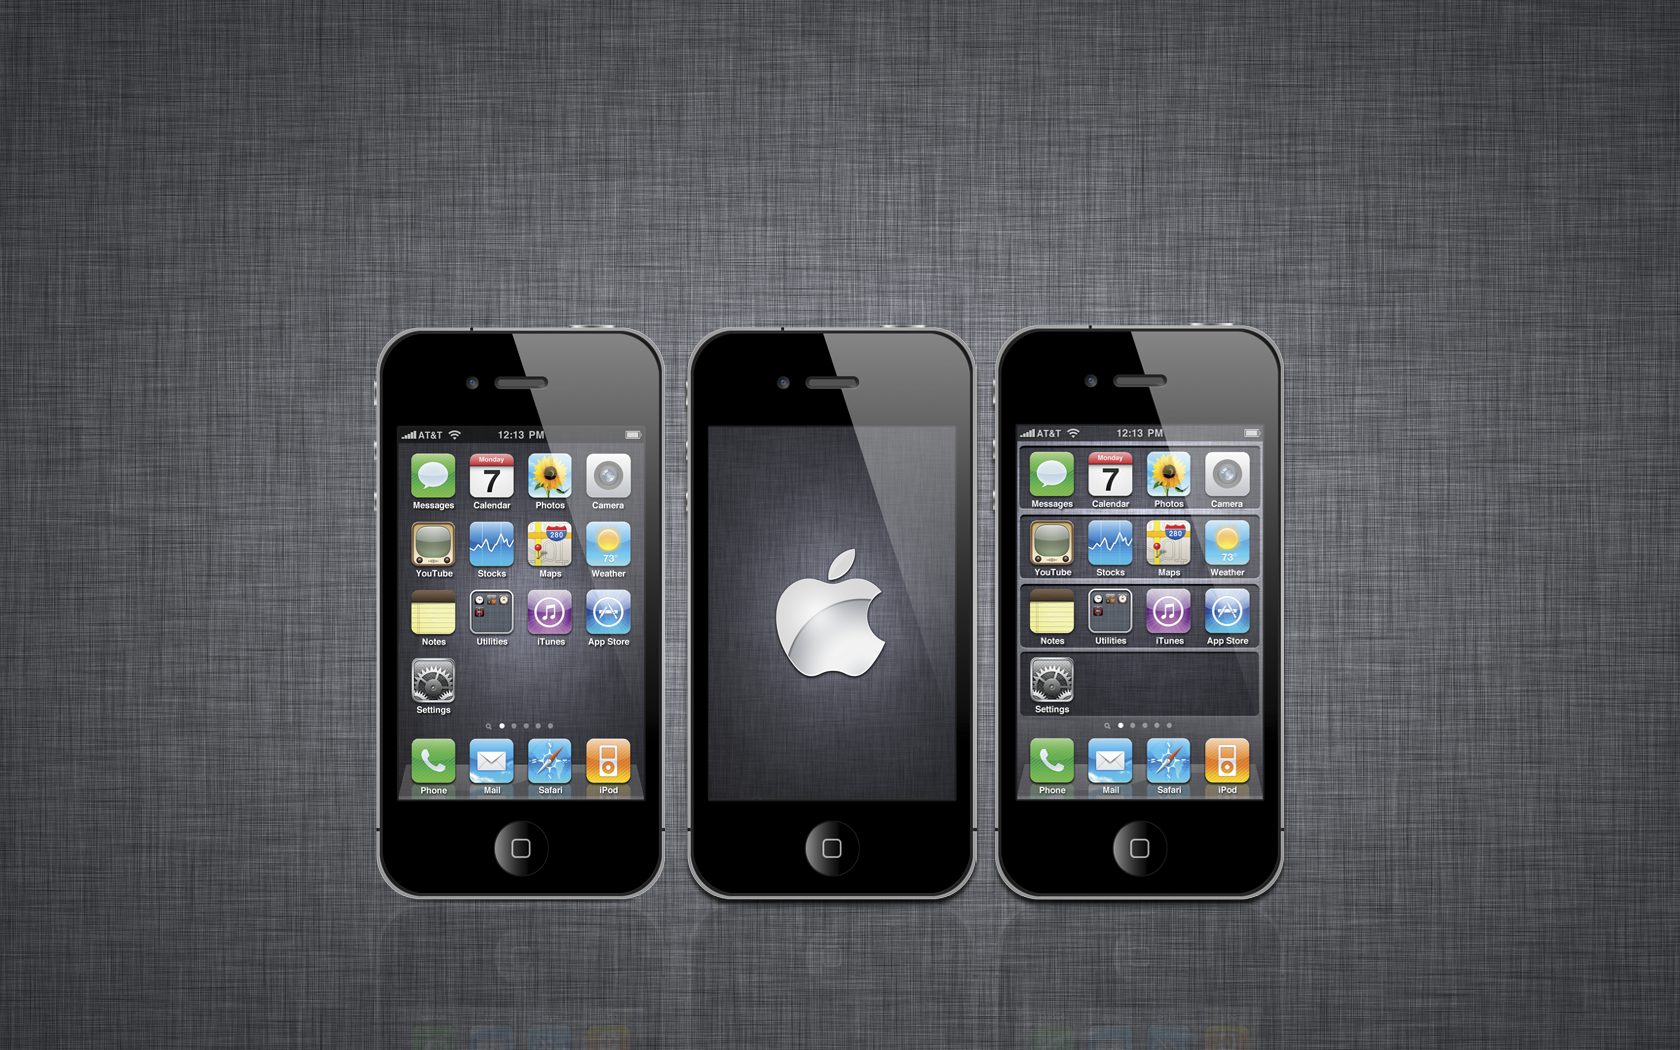 iOS 5 Wallpaper Pack by iTeppo 1680x1050